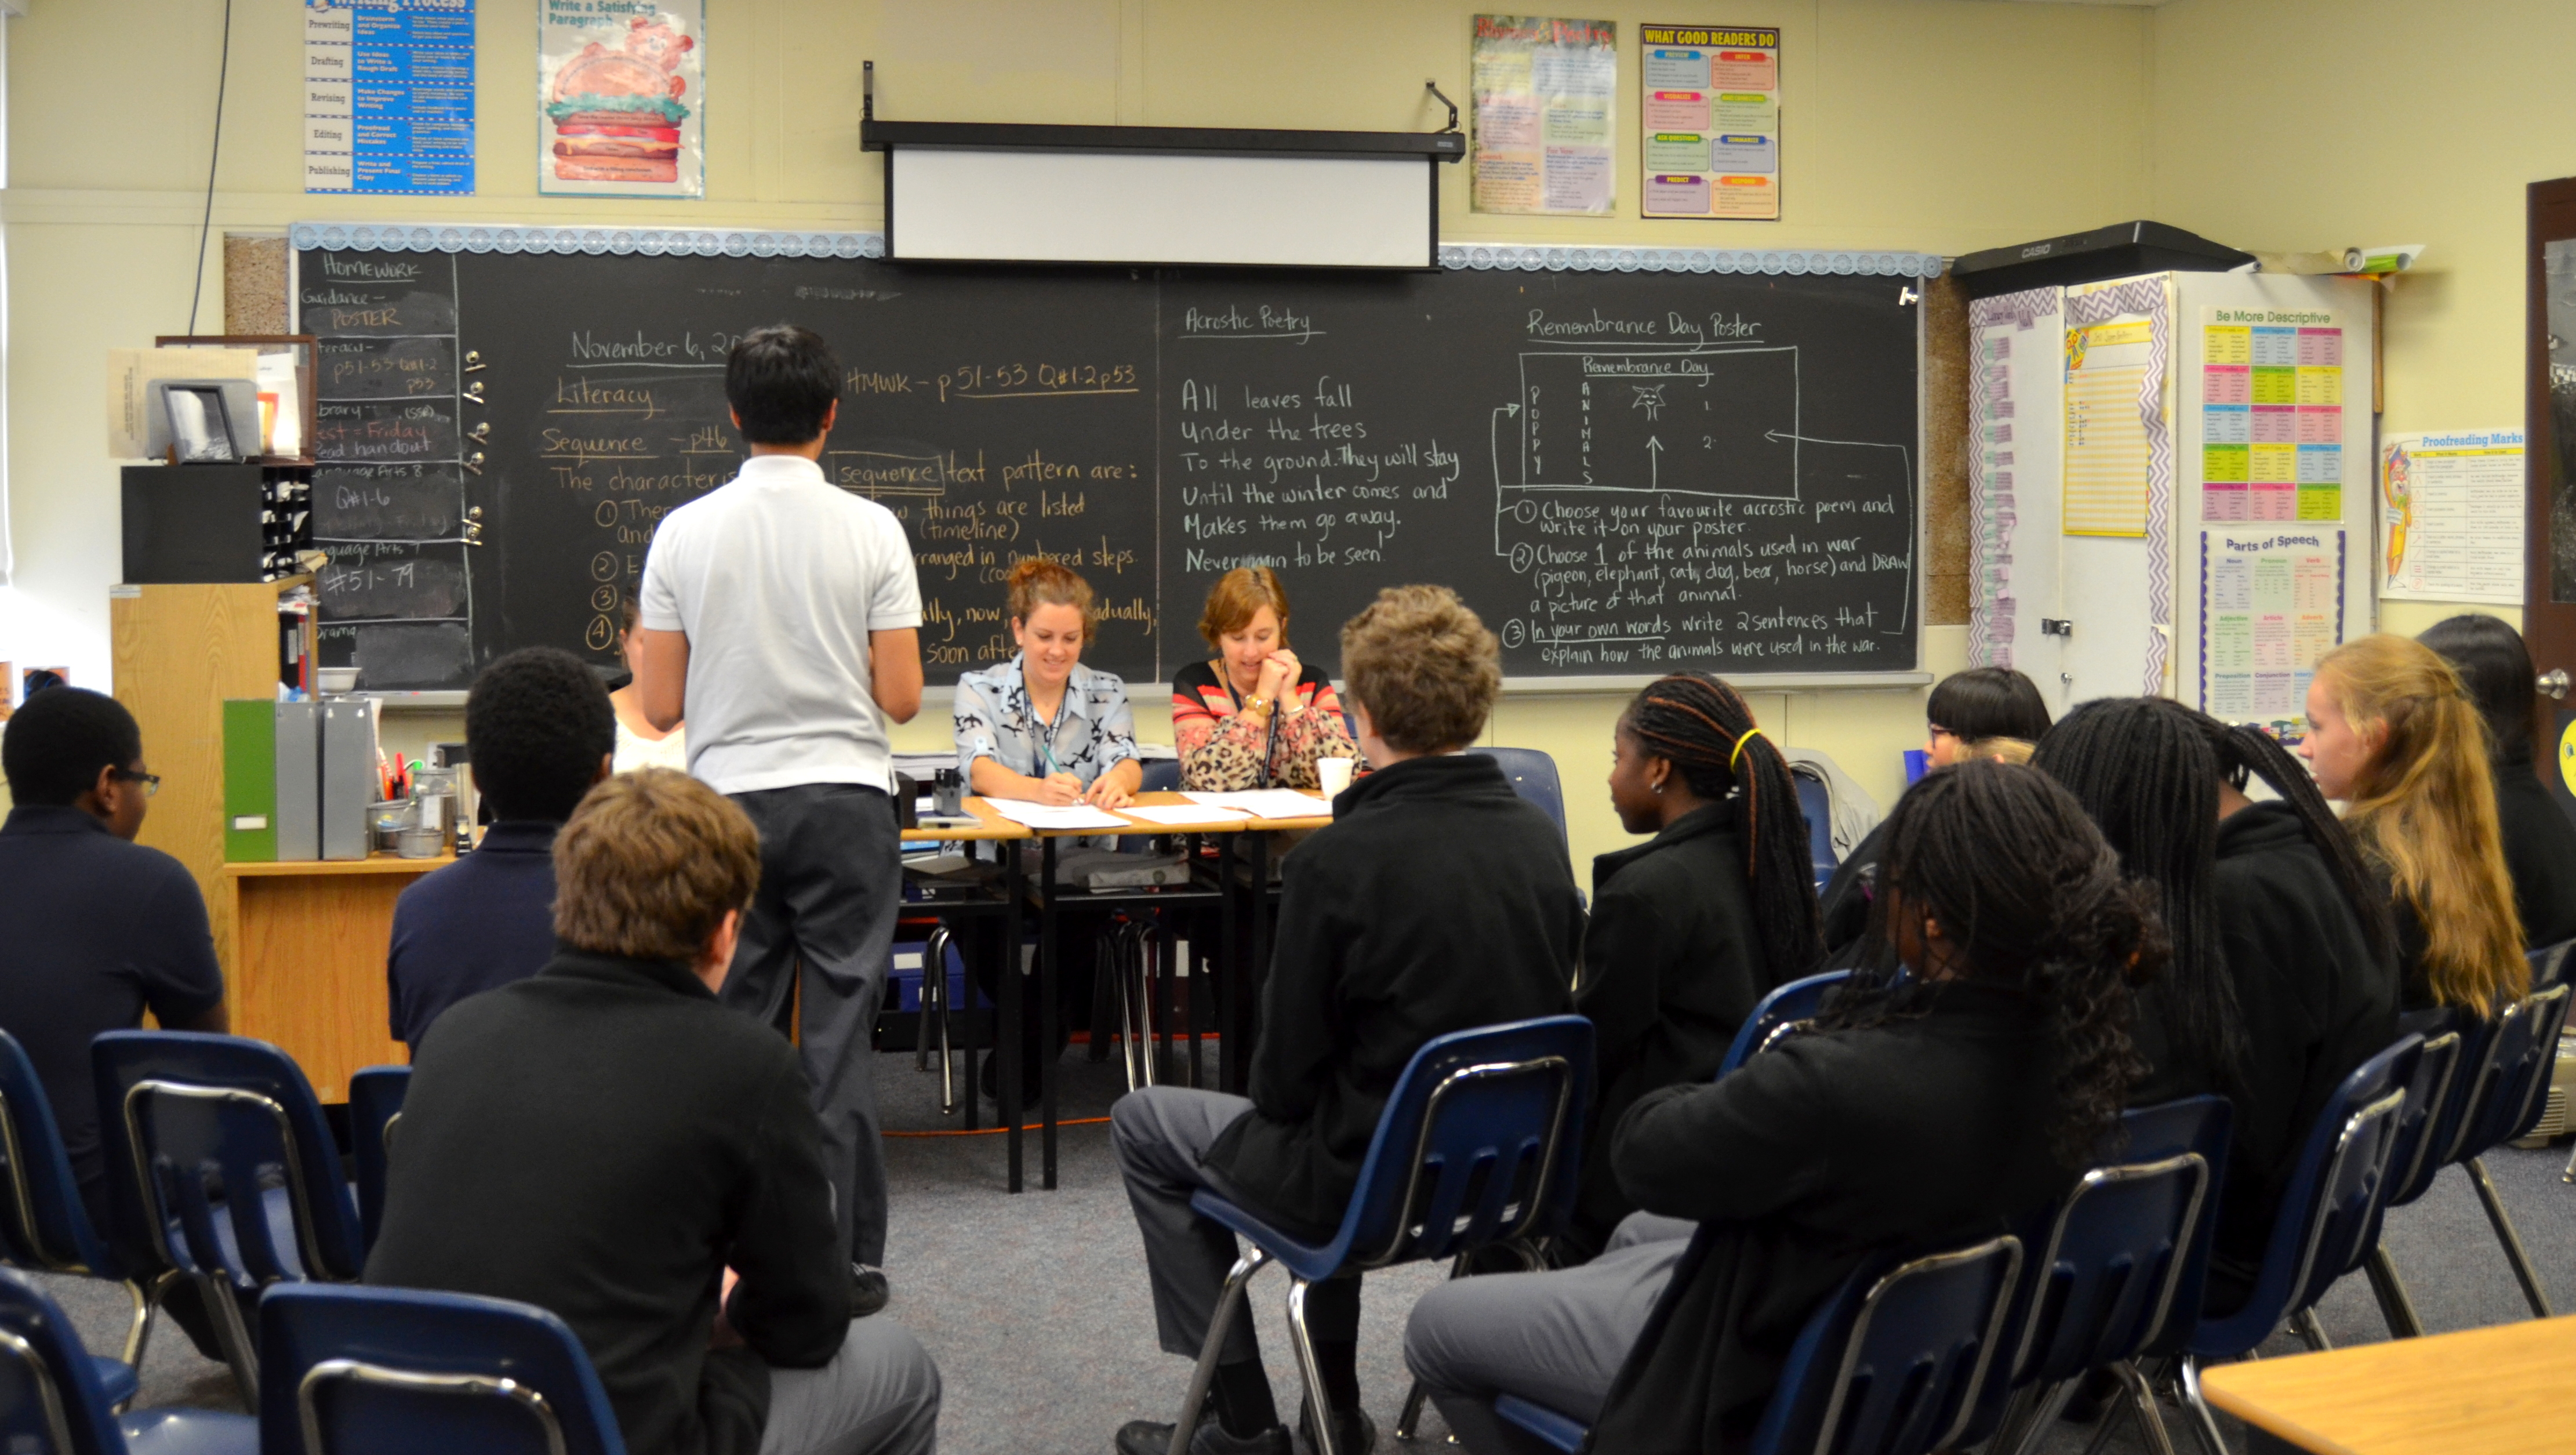 JMS compete in Spelling Bee - Columbia International College